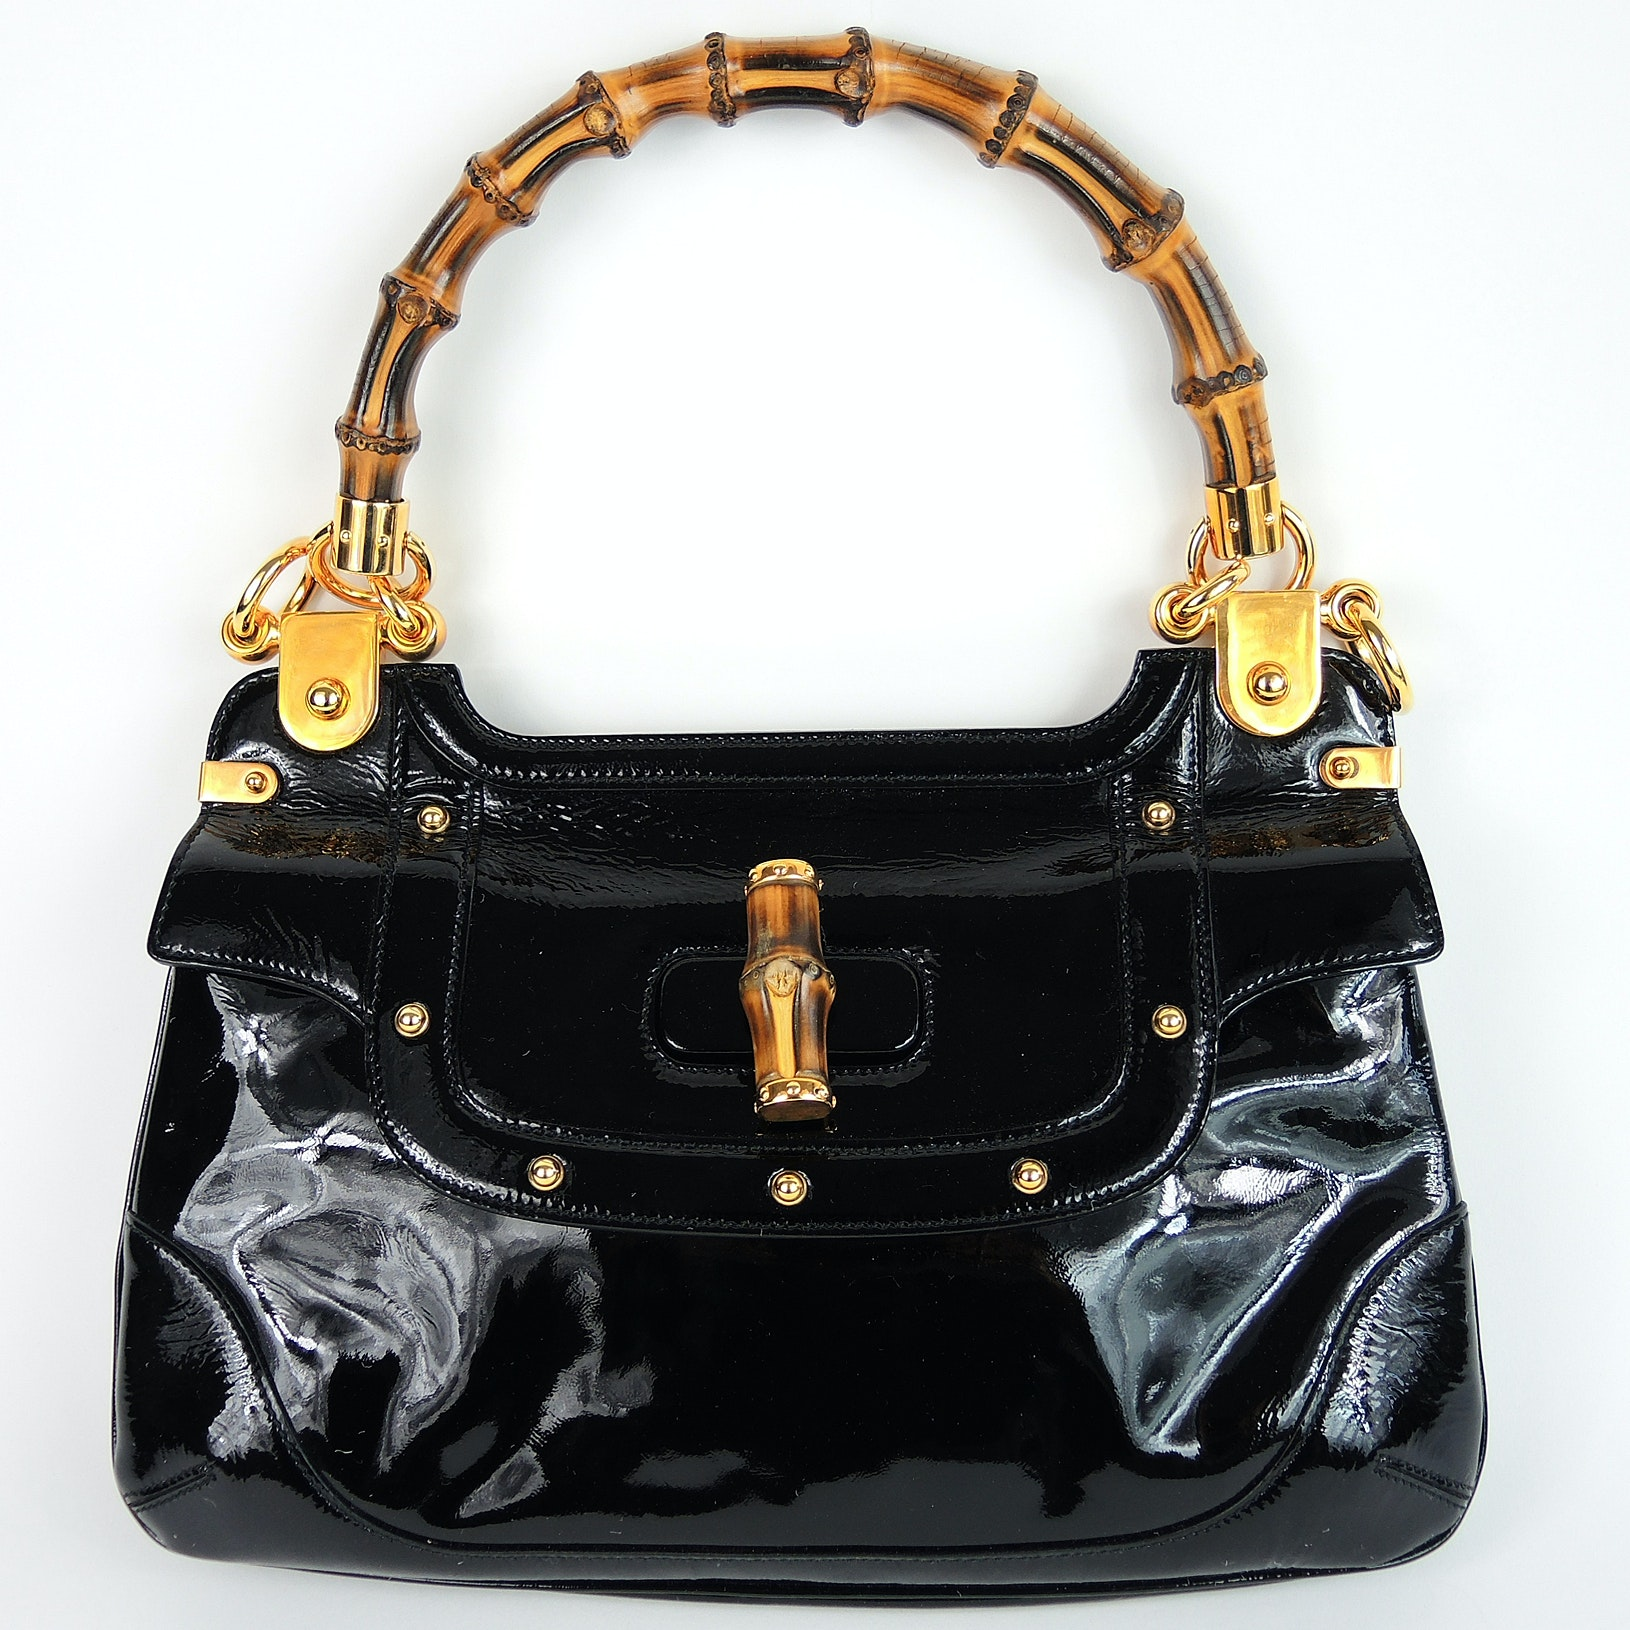 Gucci Black Leather Purse with Bamboo-Style Handle